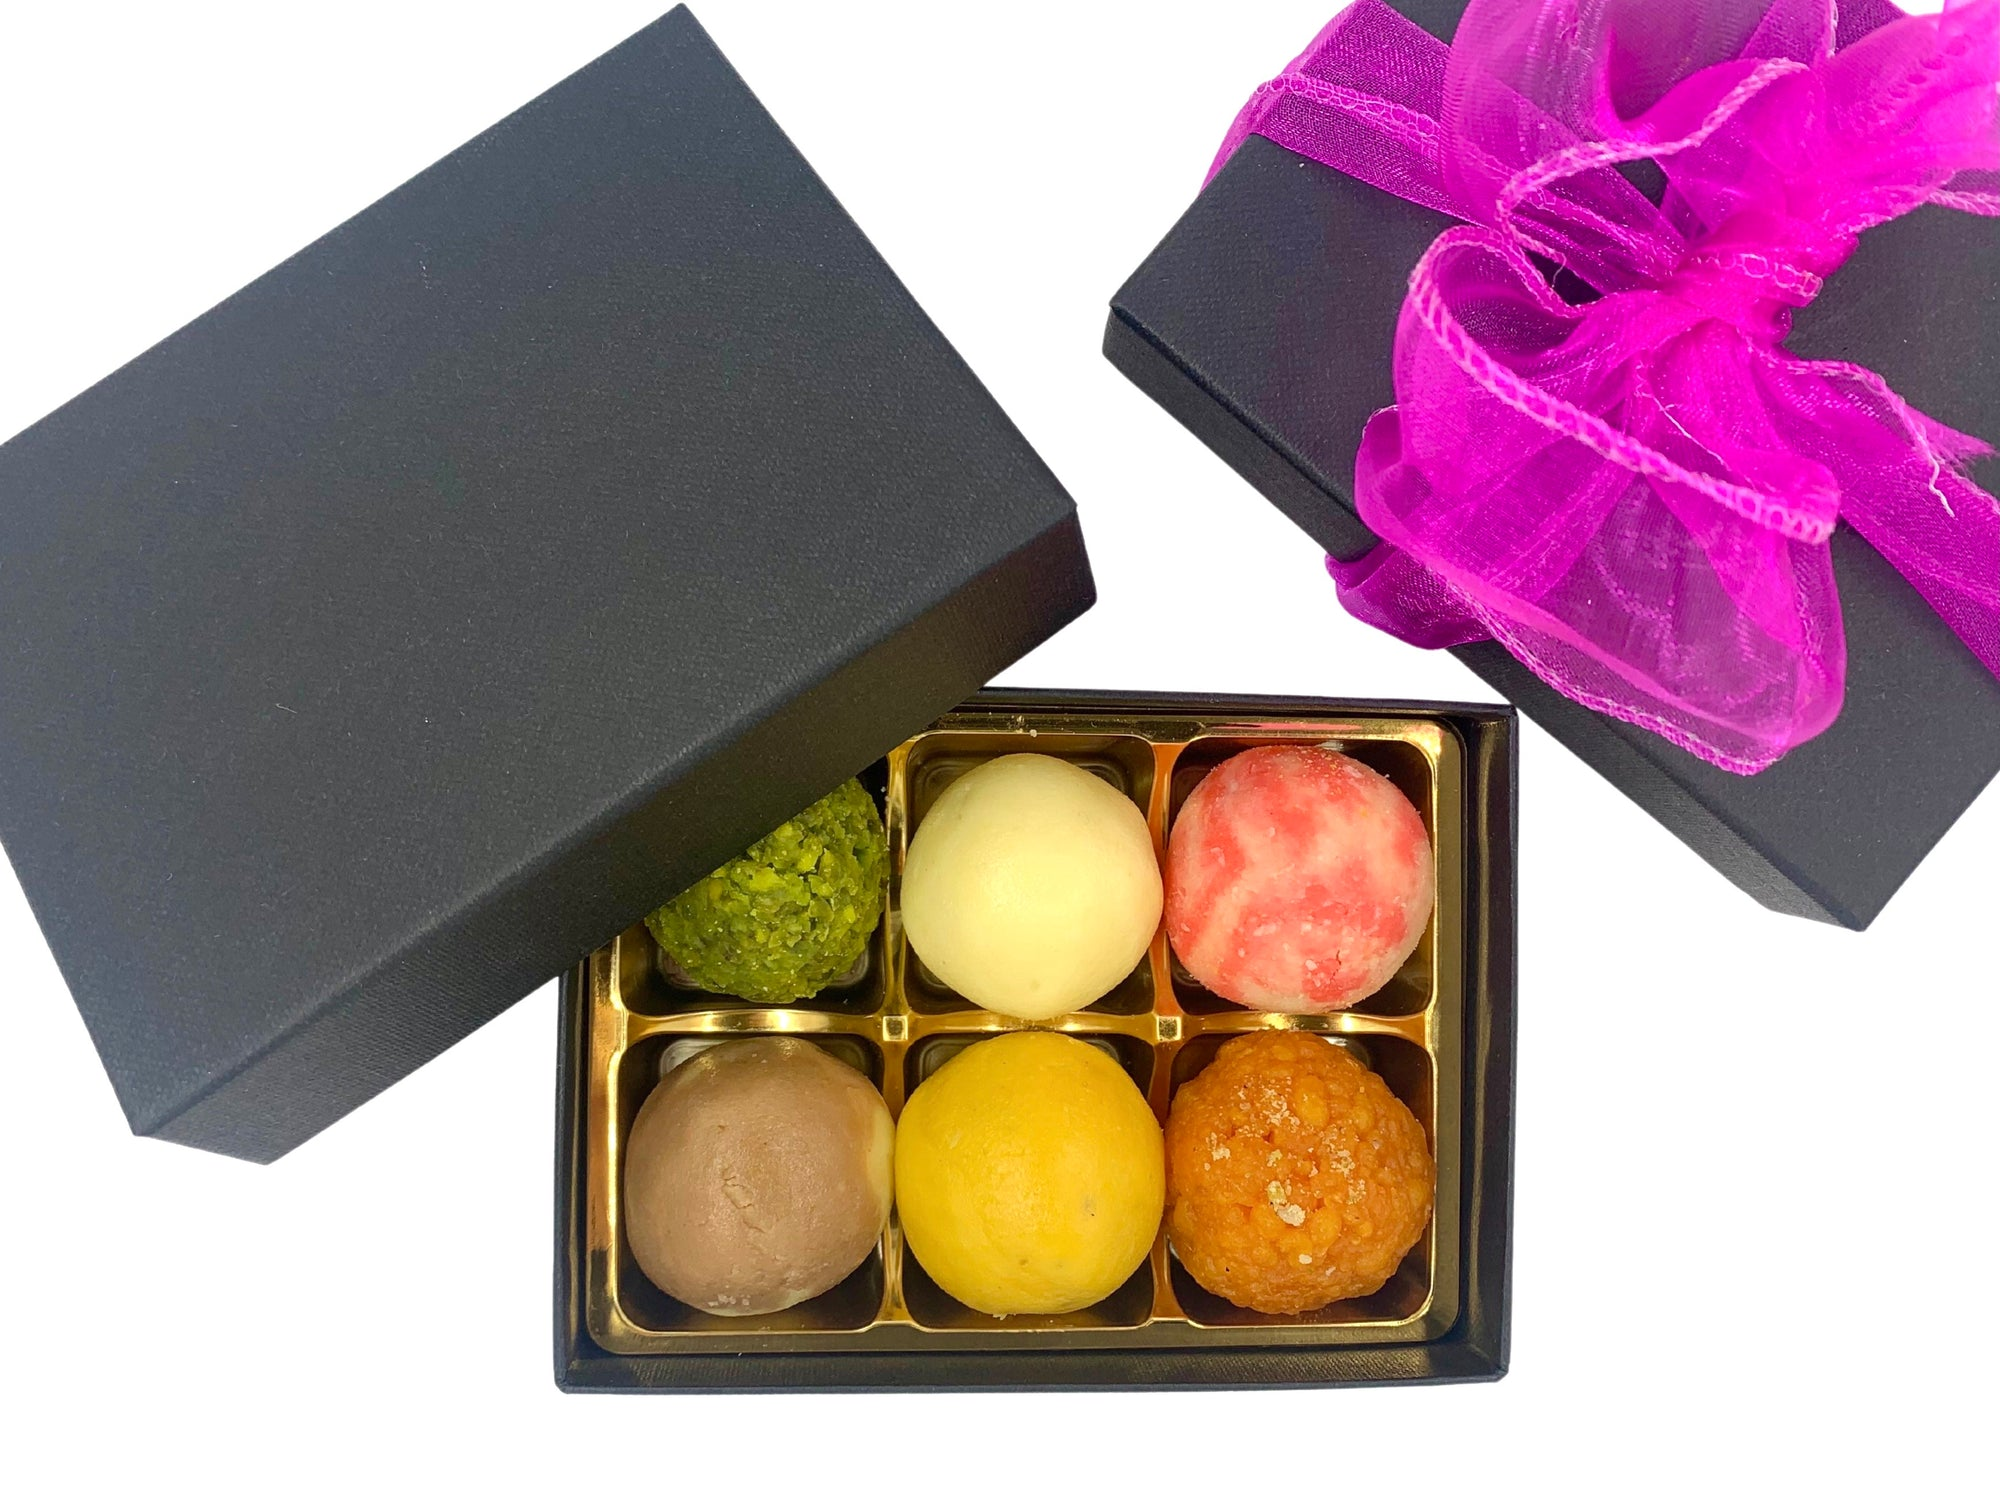 Mini Mixed Mithai: Black Gift Box